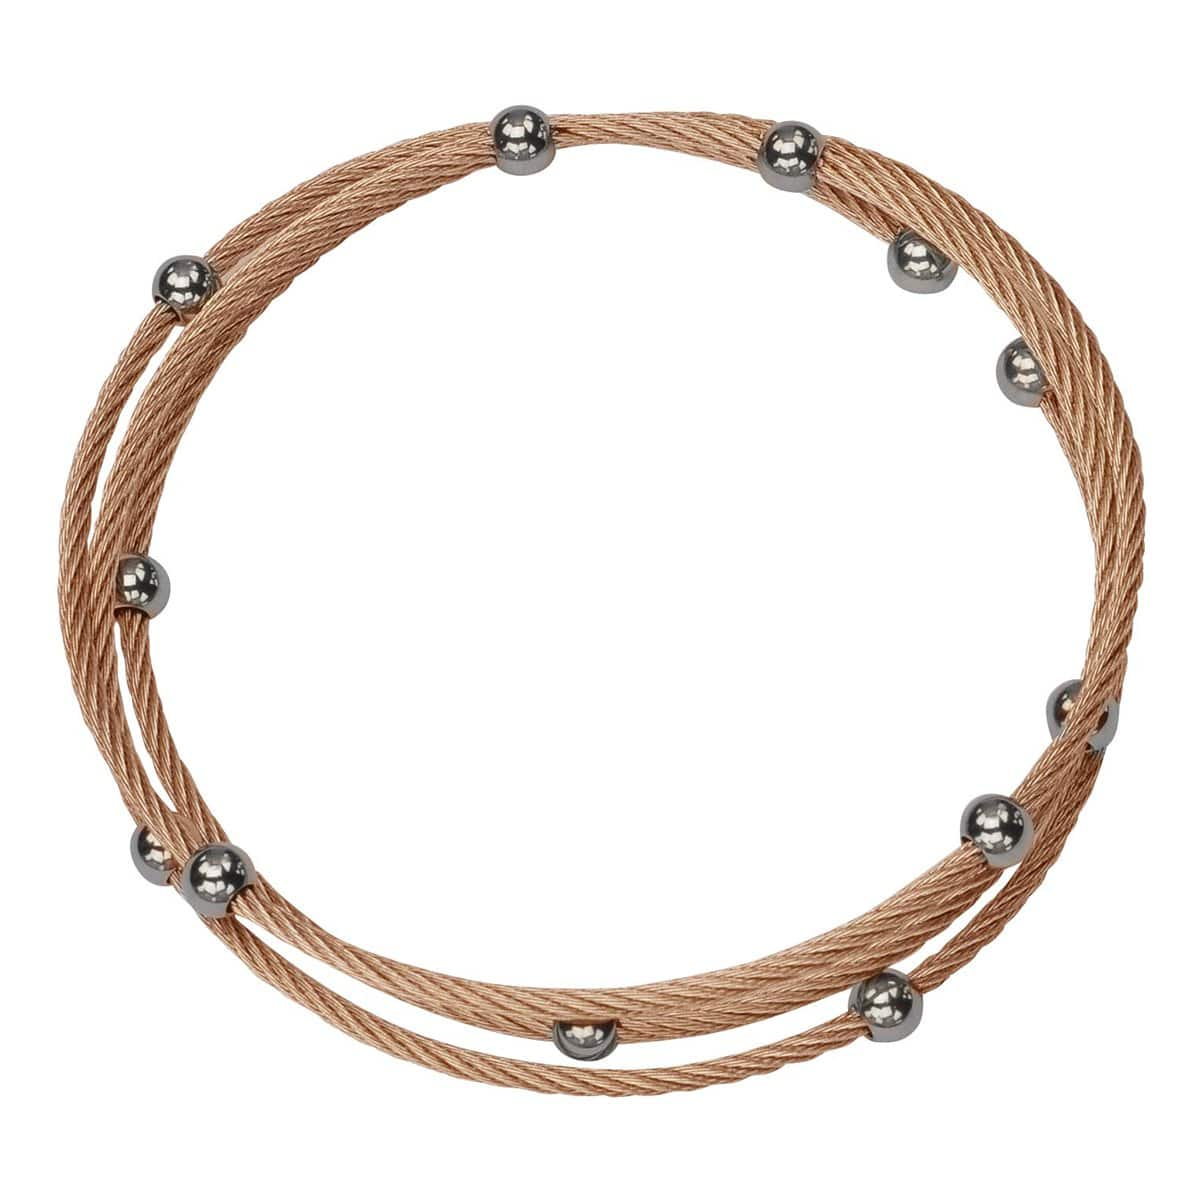 Rose Gold & Silver Stainless Steel Cable & Bead Wrap Kadaa